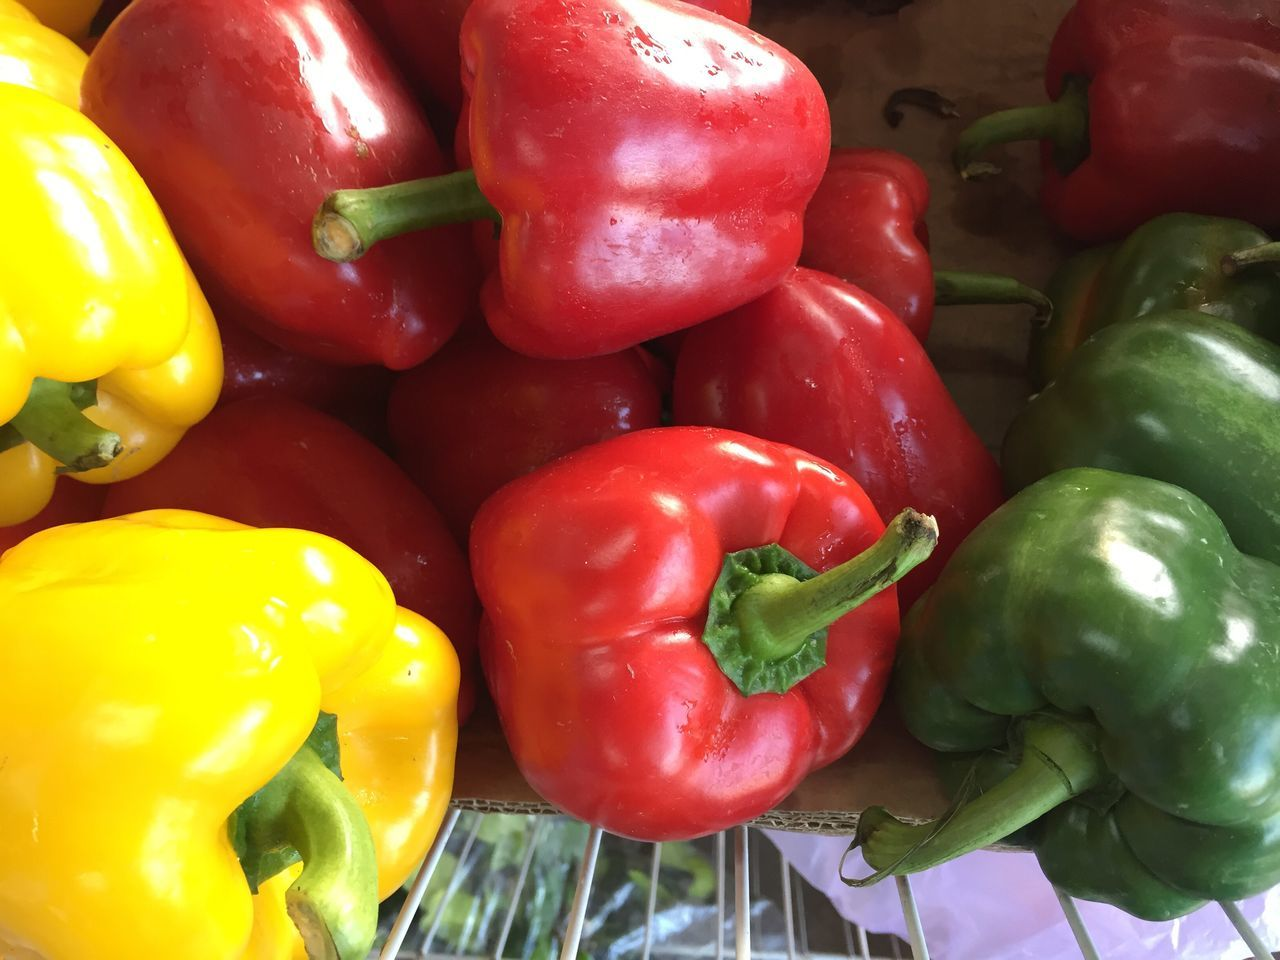 bell pepper, vegetable, red bell pepper, yellow bell pepper, green bell pepper, full frame, food, food and drink, pepper - vegetable, still life, healthy eating, freshness, no people, red, backgrounds, for sale, abundance, raw food, variation, market, green color, close-up, indoors, day